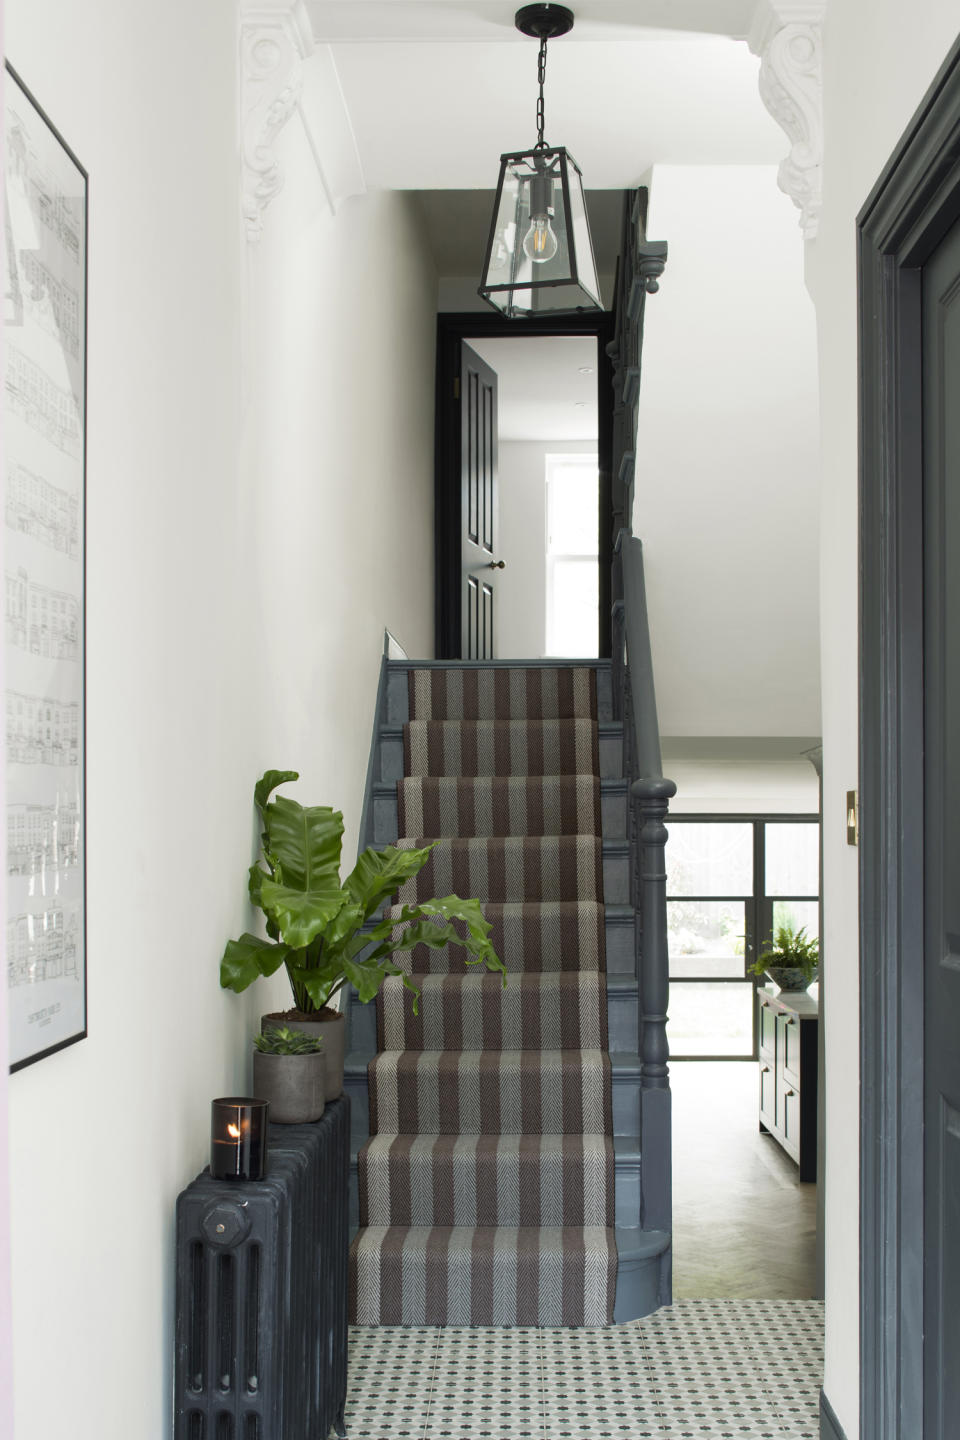 Staircase ideas - patterned runner